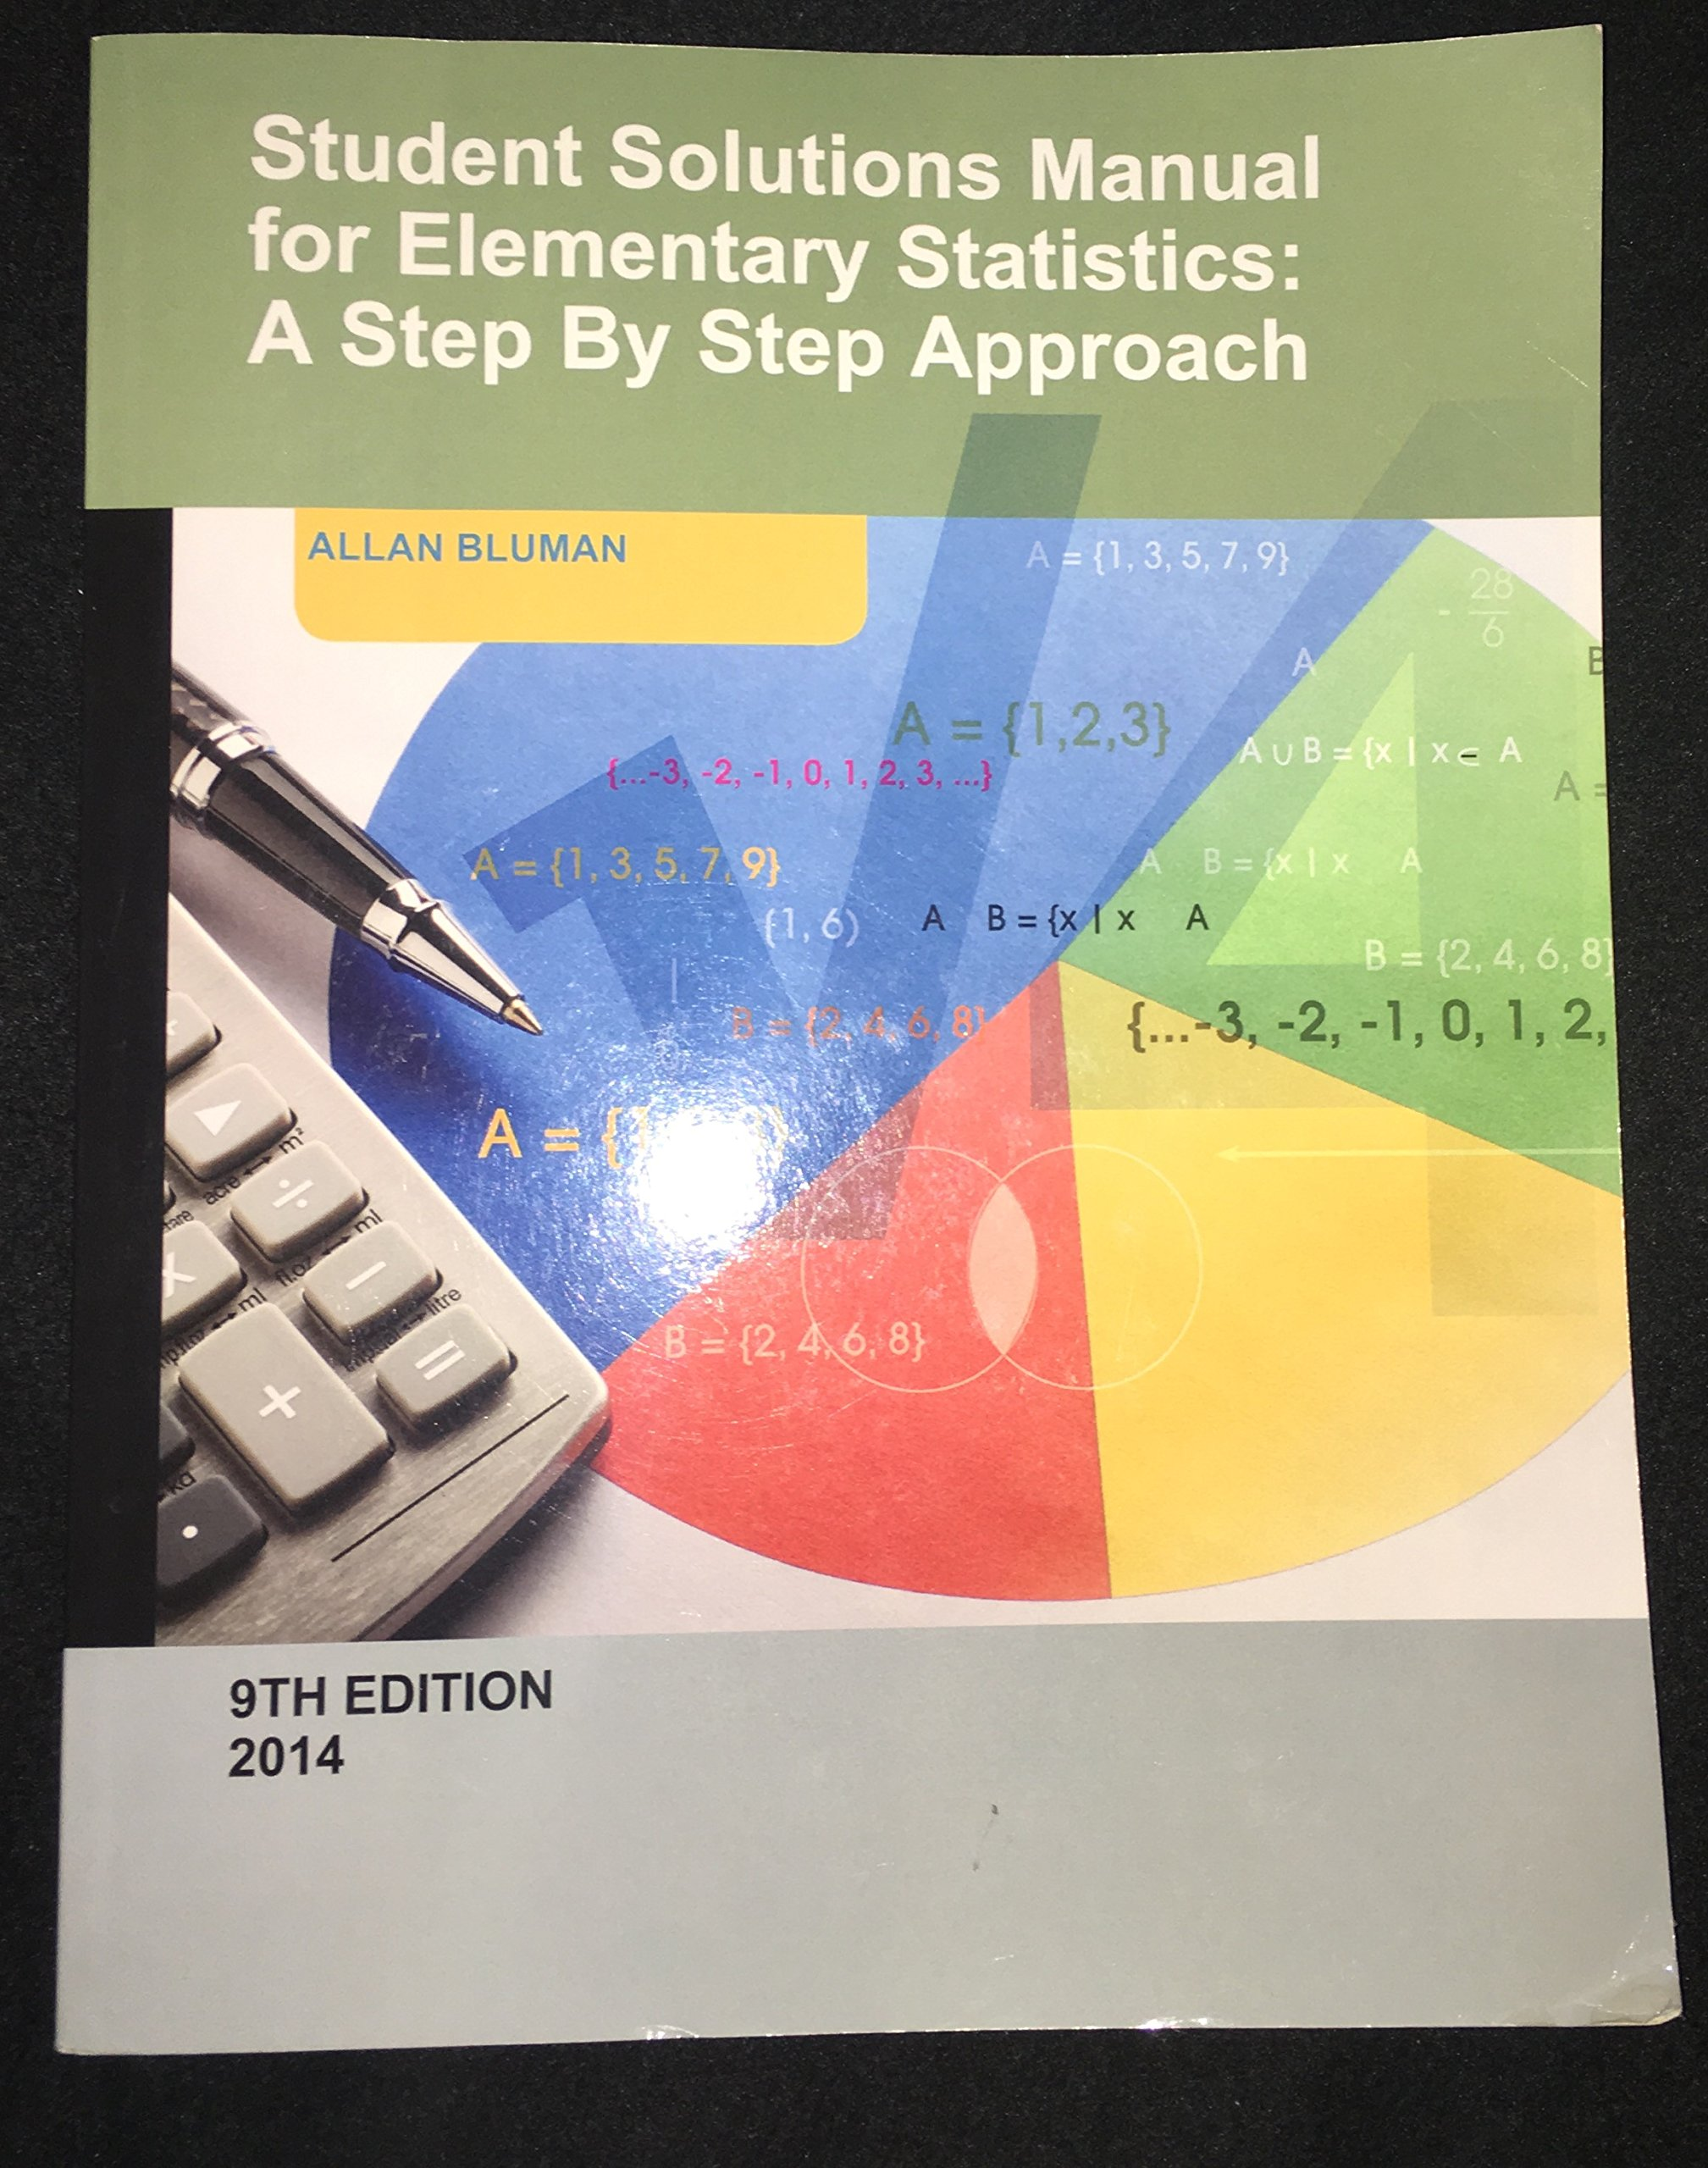 Student Solutions Manual for Elementary Statistics: A Step By Step  Approach: Allan Bluman: 9781308319100: Amazon.com: Books